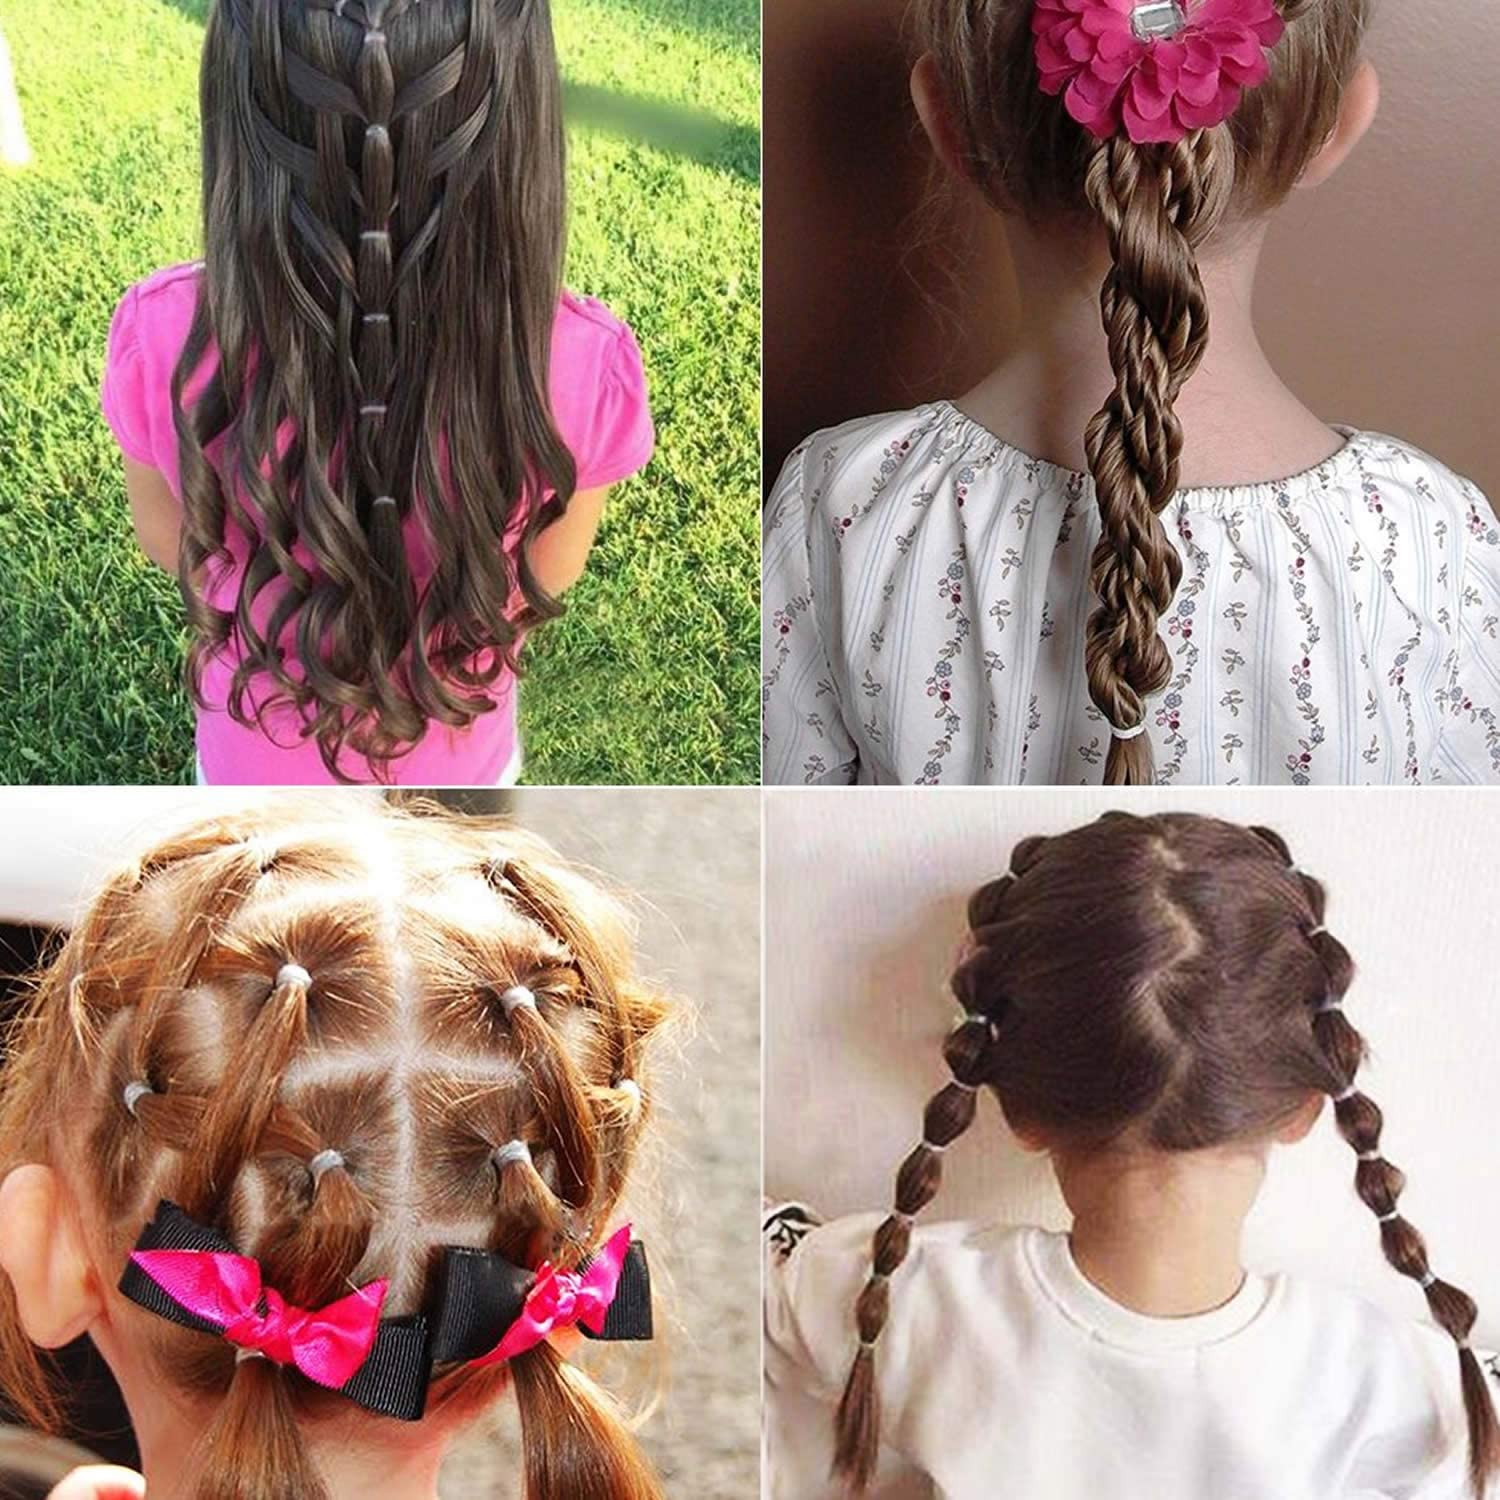 Hair Bands Ties 200pcs Tiny Soft Elastic Rubber Bands Not Hurt Hair For Toddler Baby Kid Beauty Cjp Org In